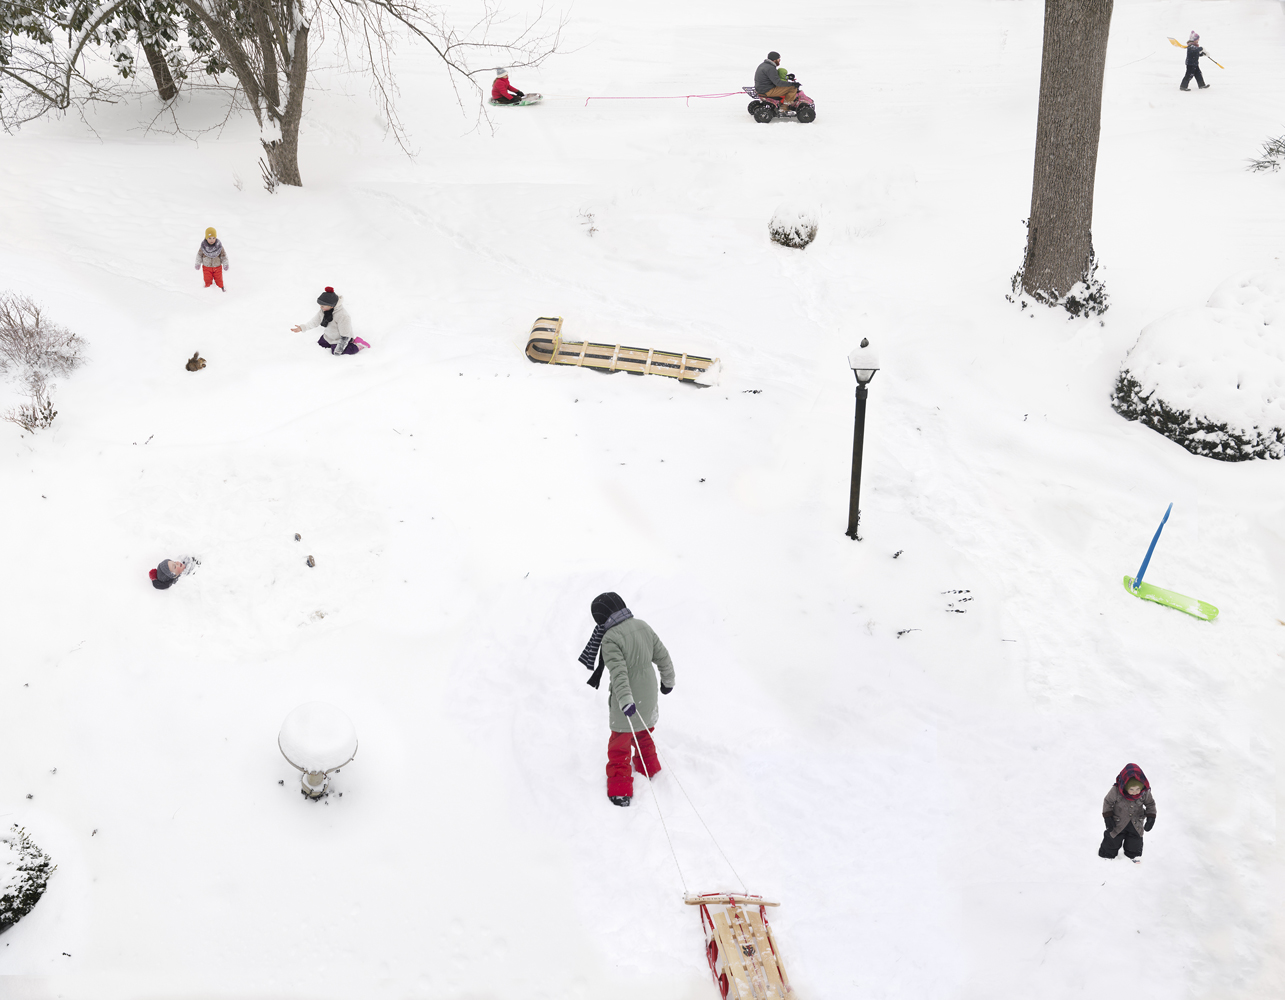 """Julie Blackmon, Snow Days, 2021, archival pigment print, 22 x 28"""", 31.75 x 41"""", 40 x 51.5"""", editions of 7, price on request"""